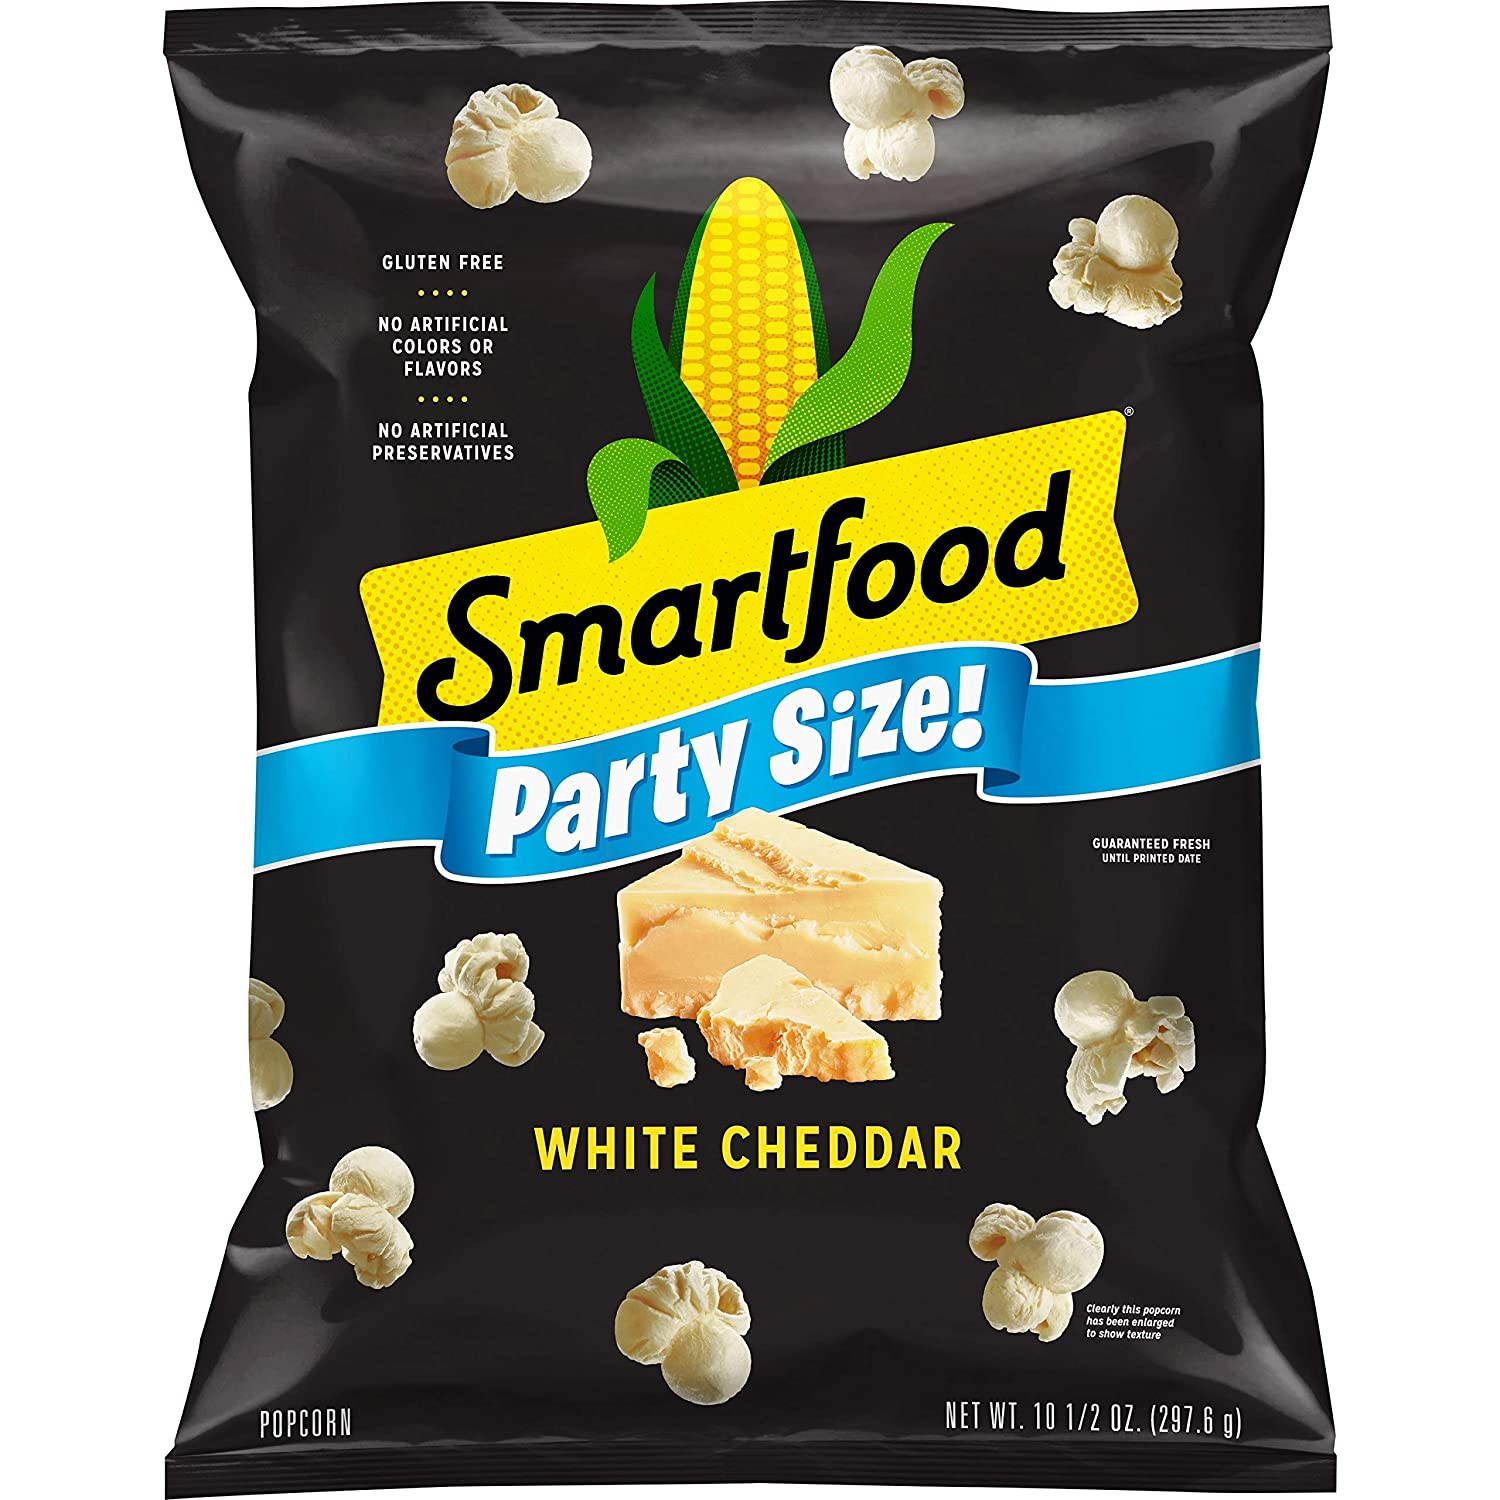 Smartfood White Cheddar Flavored Popcorn, Party Size! 10.5oz Bag